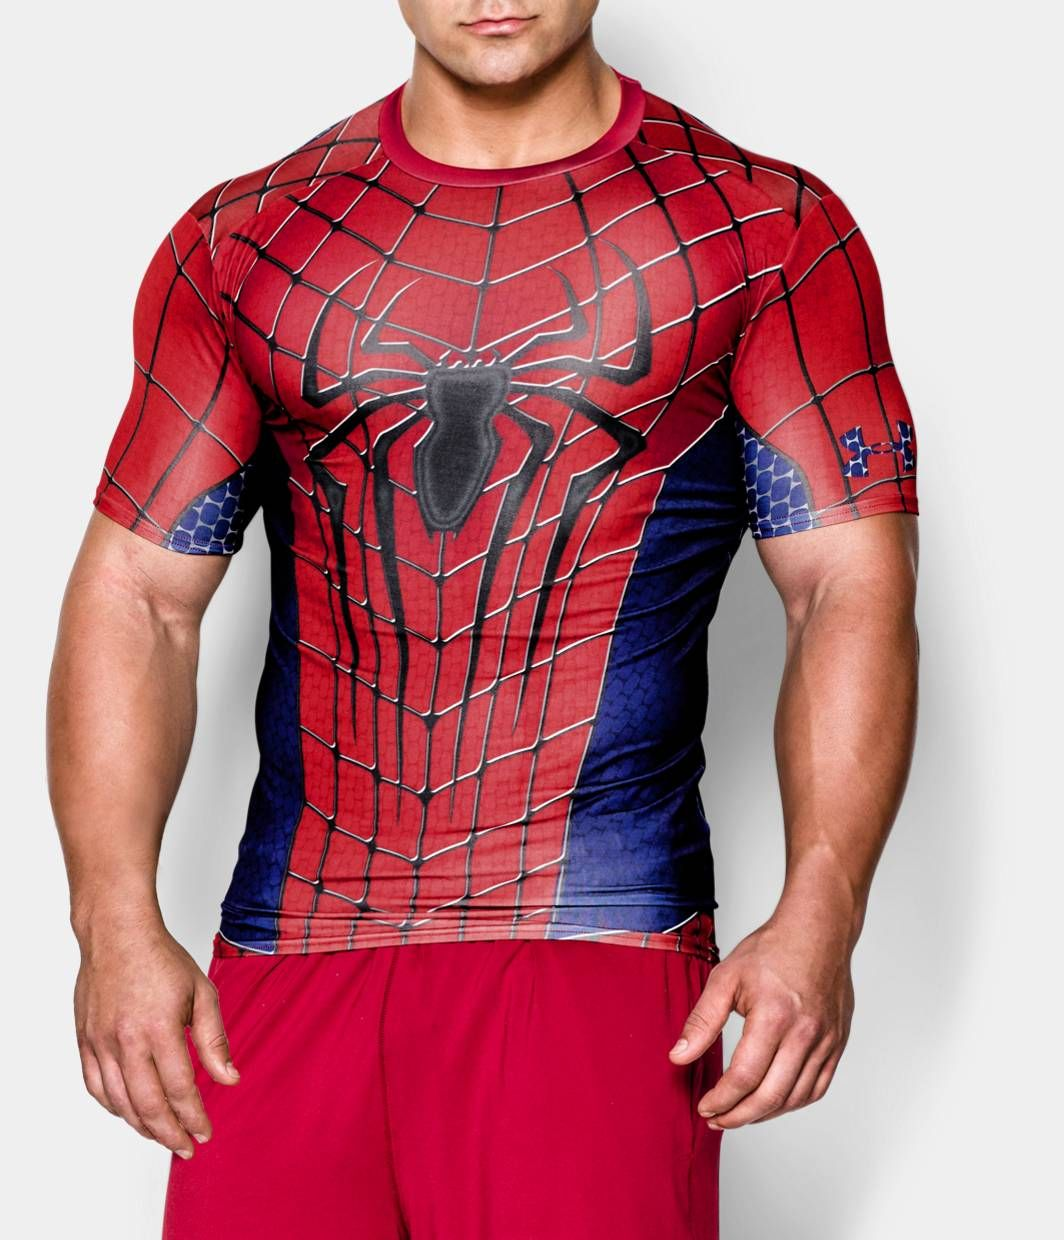 228a41ce9b1c6 Men s Under Armour® Alter Ego Spider-Man Compression Shirt